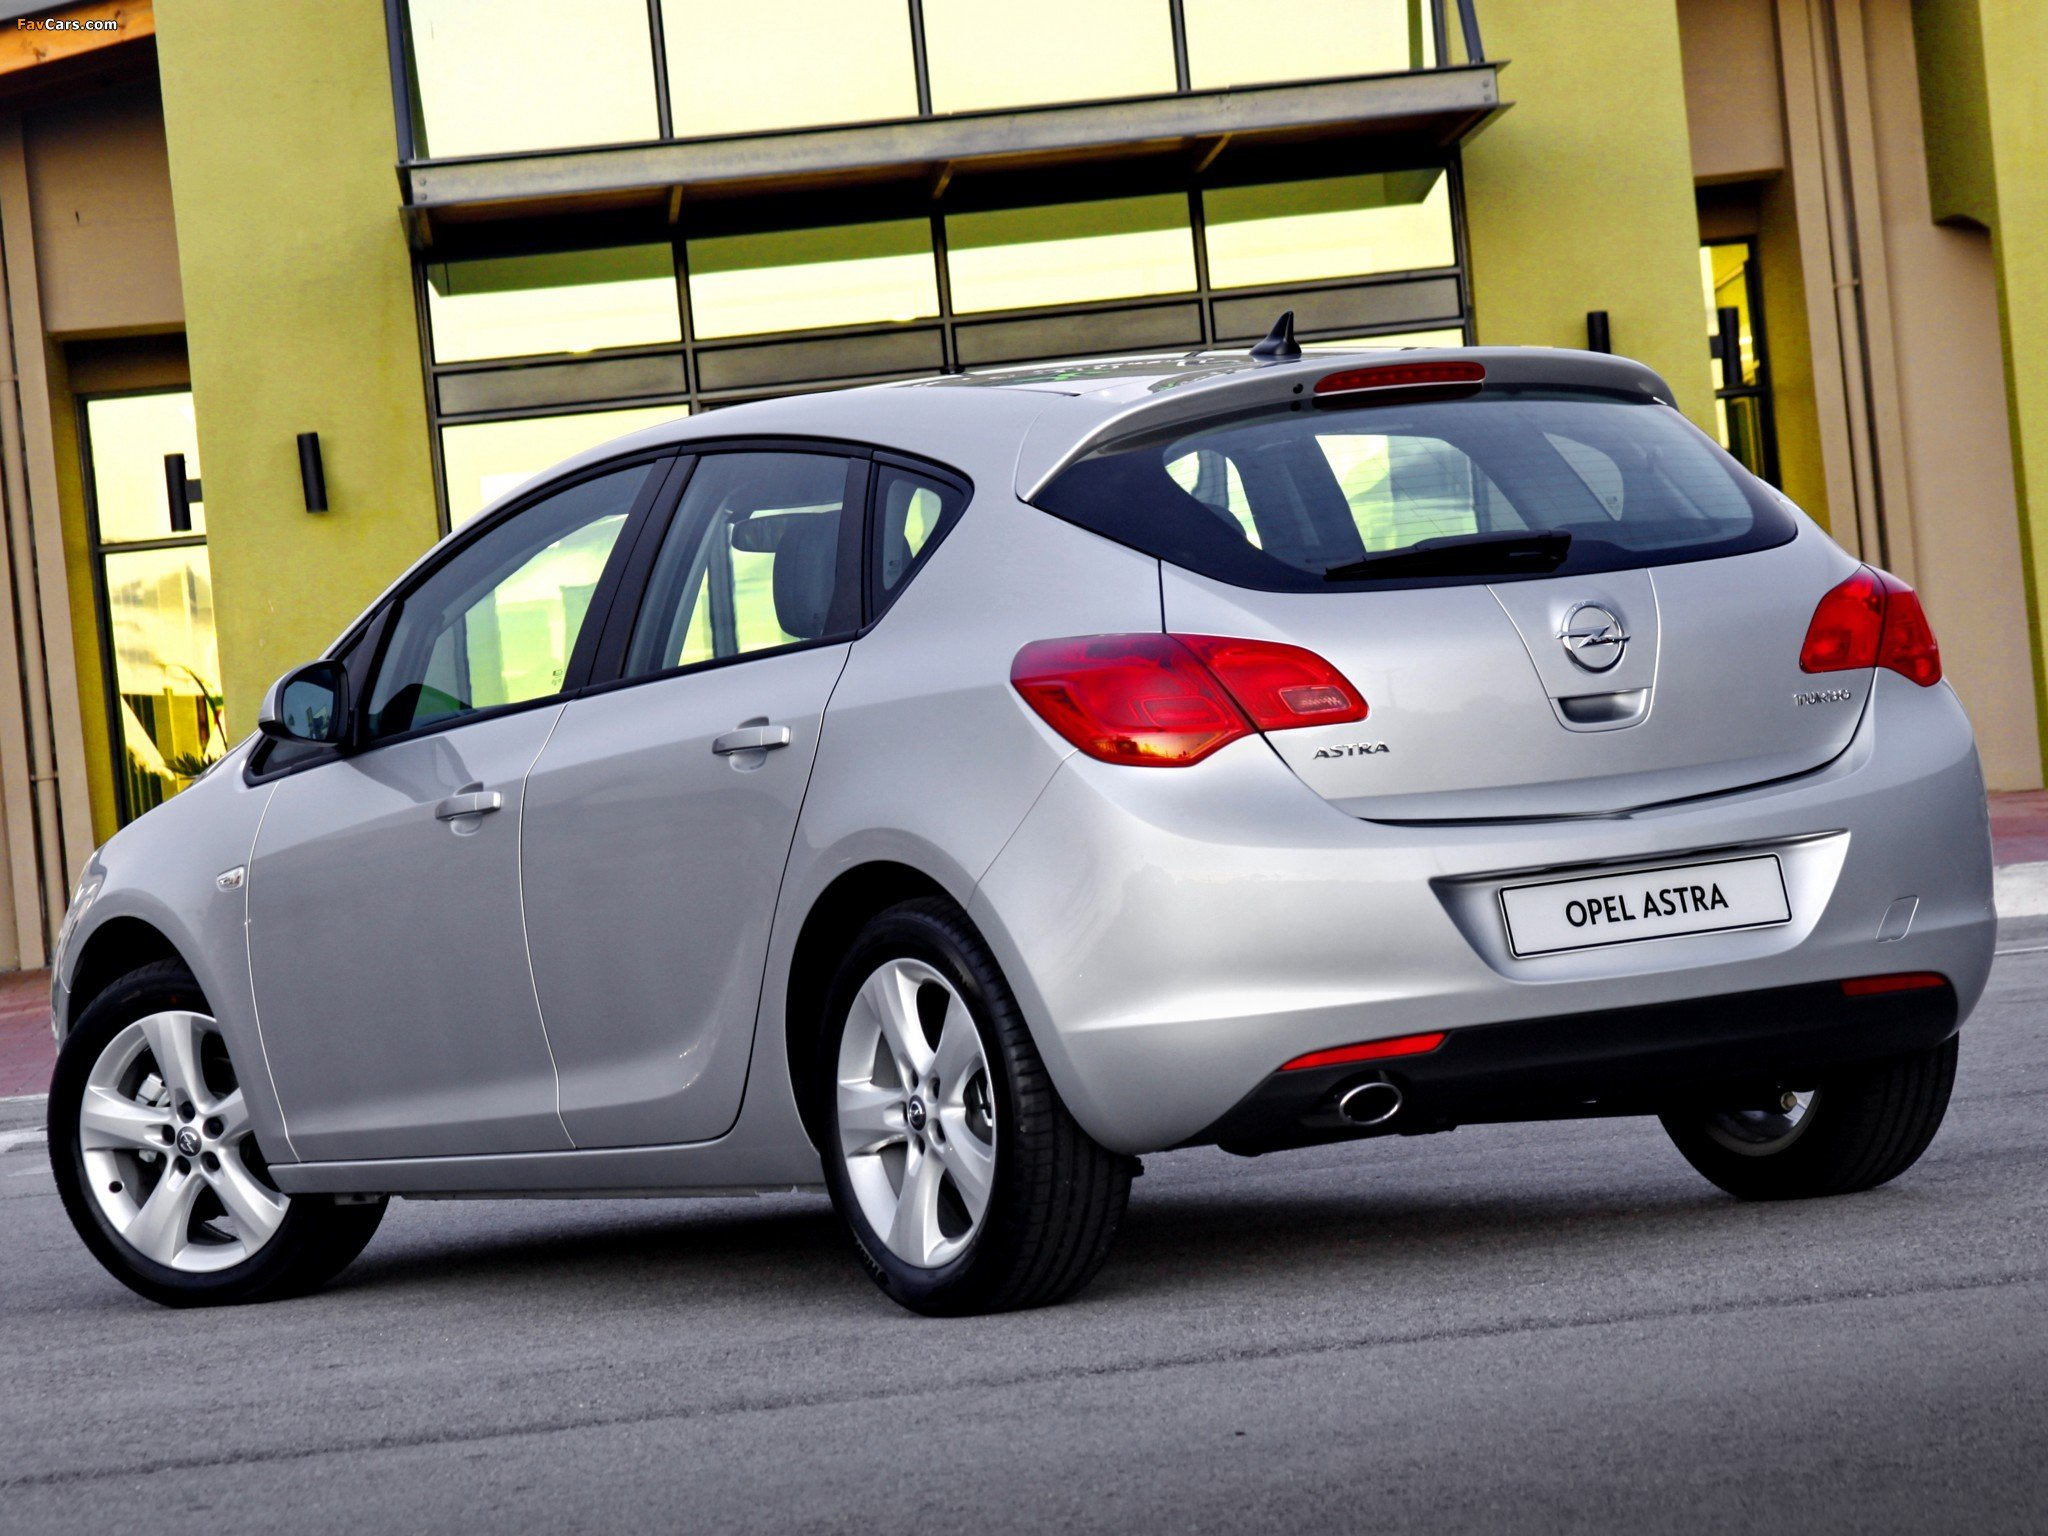 2010 opel astra j pictures information and specs auto. Black Bedroom Furniture Sets. Home Design Ideas